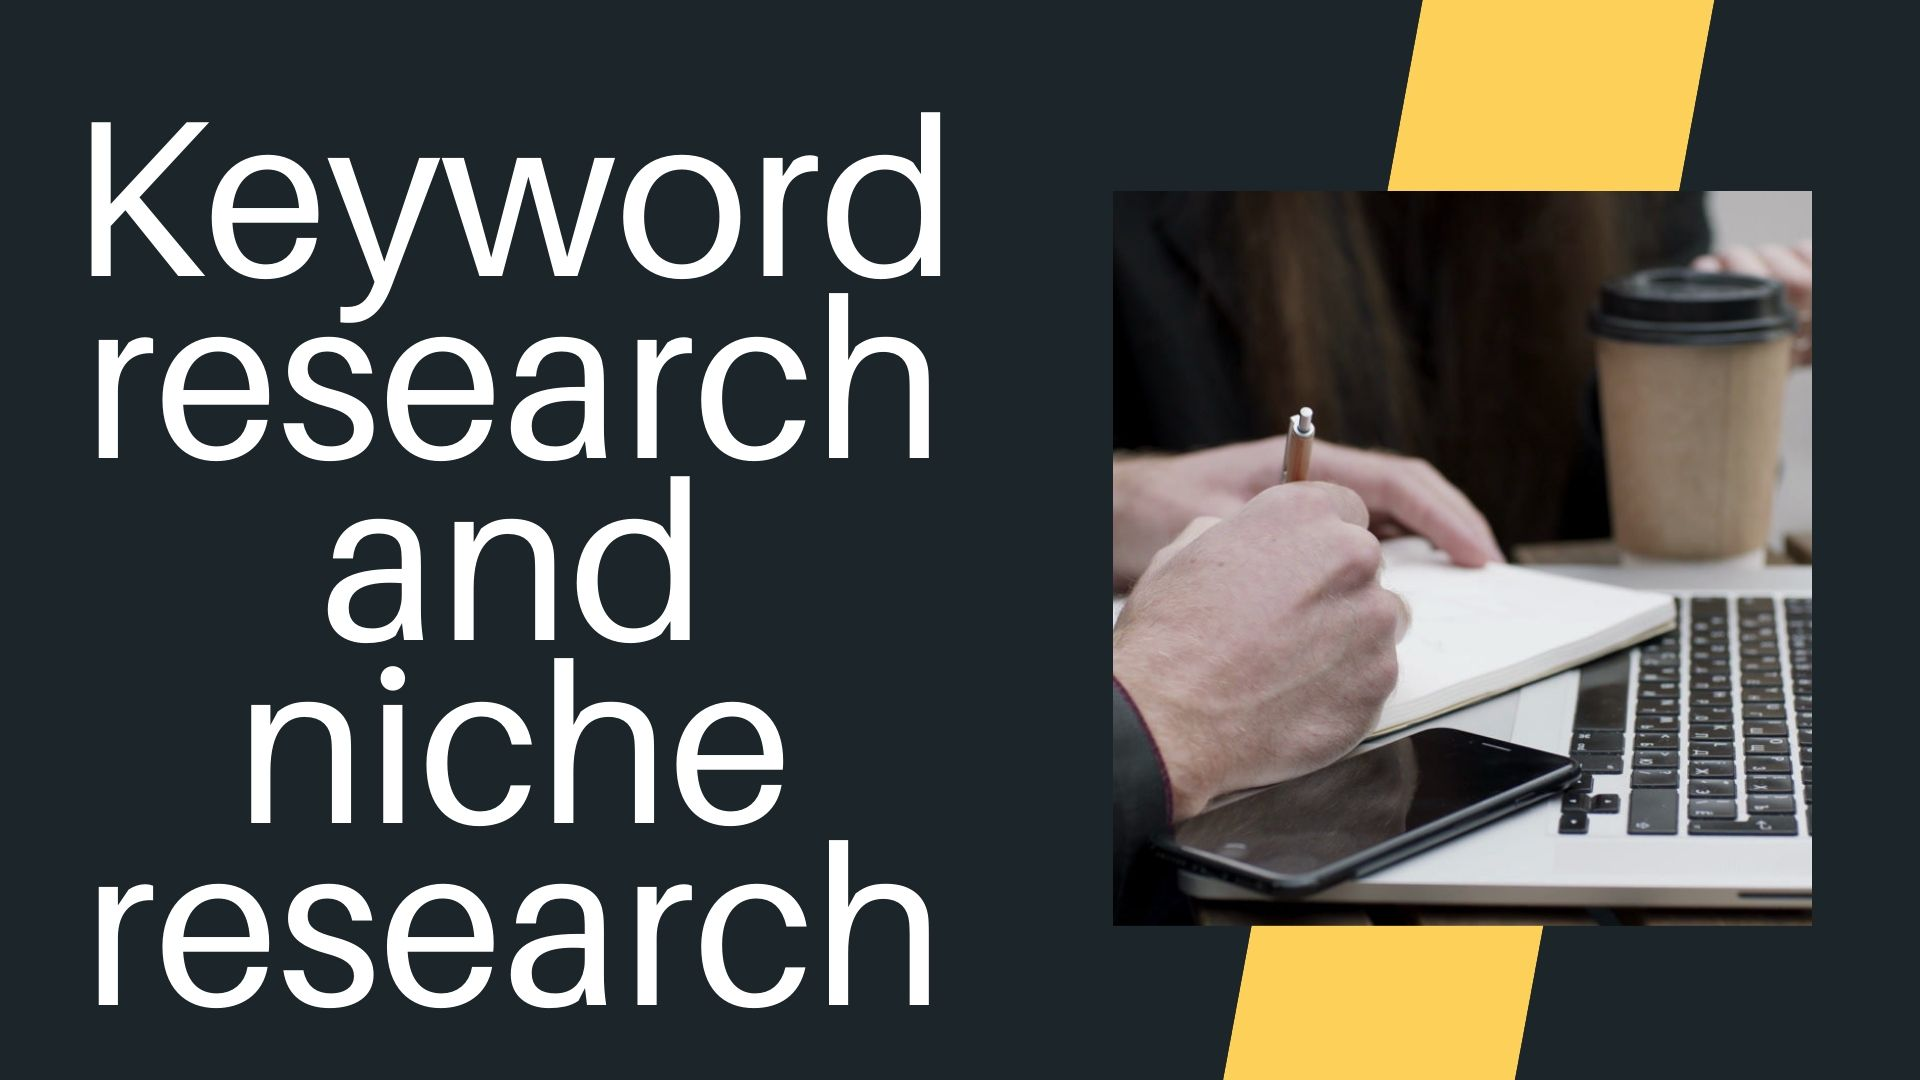 Best keyword research and niche research just 24 hours